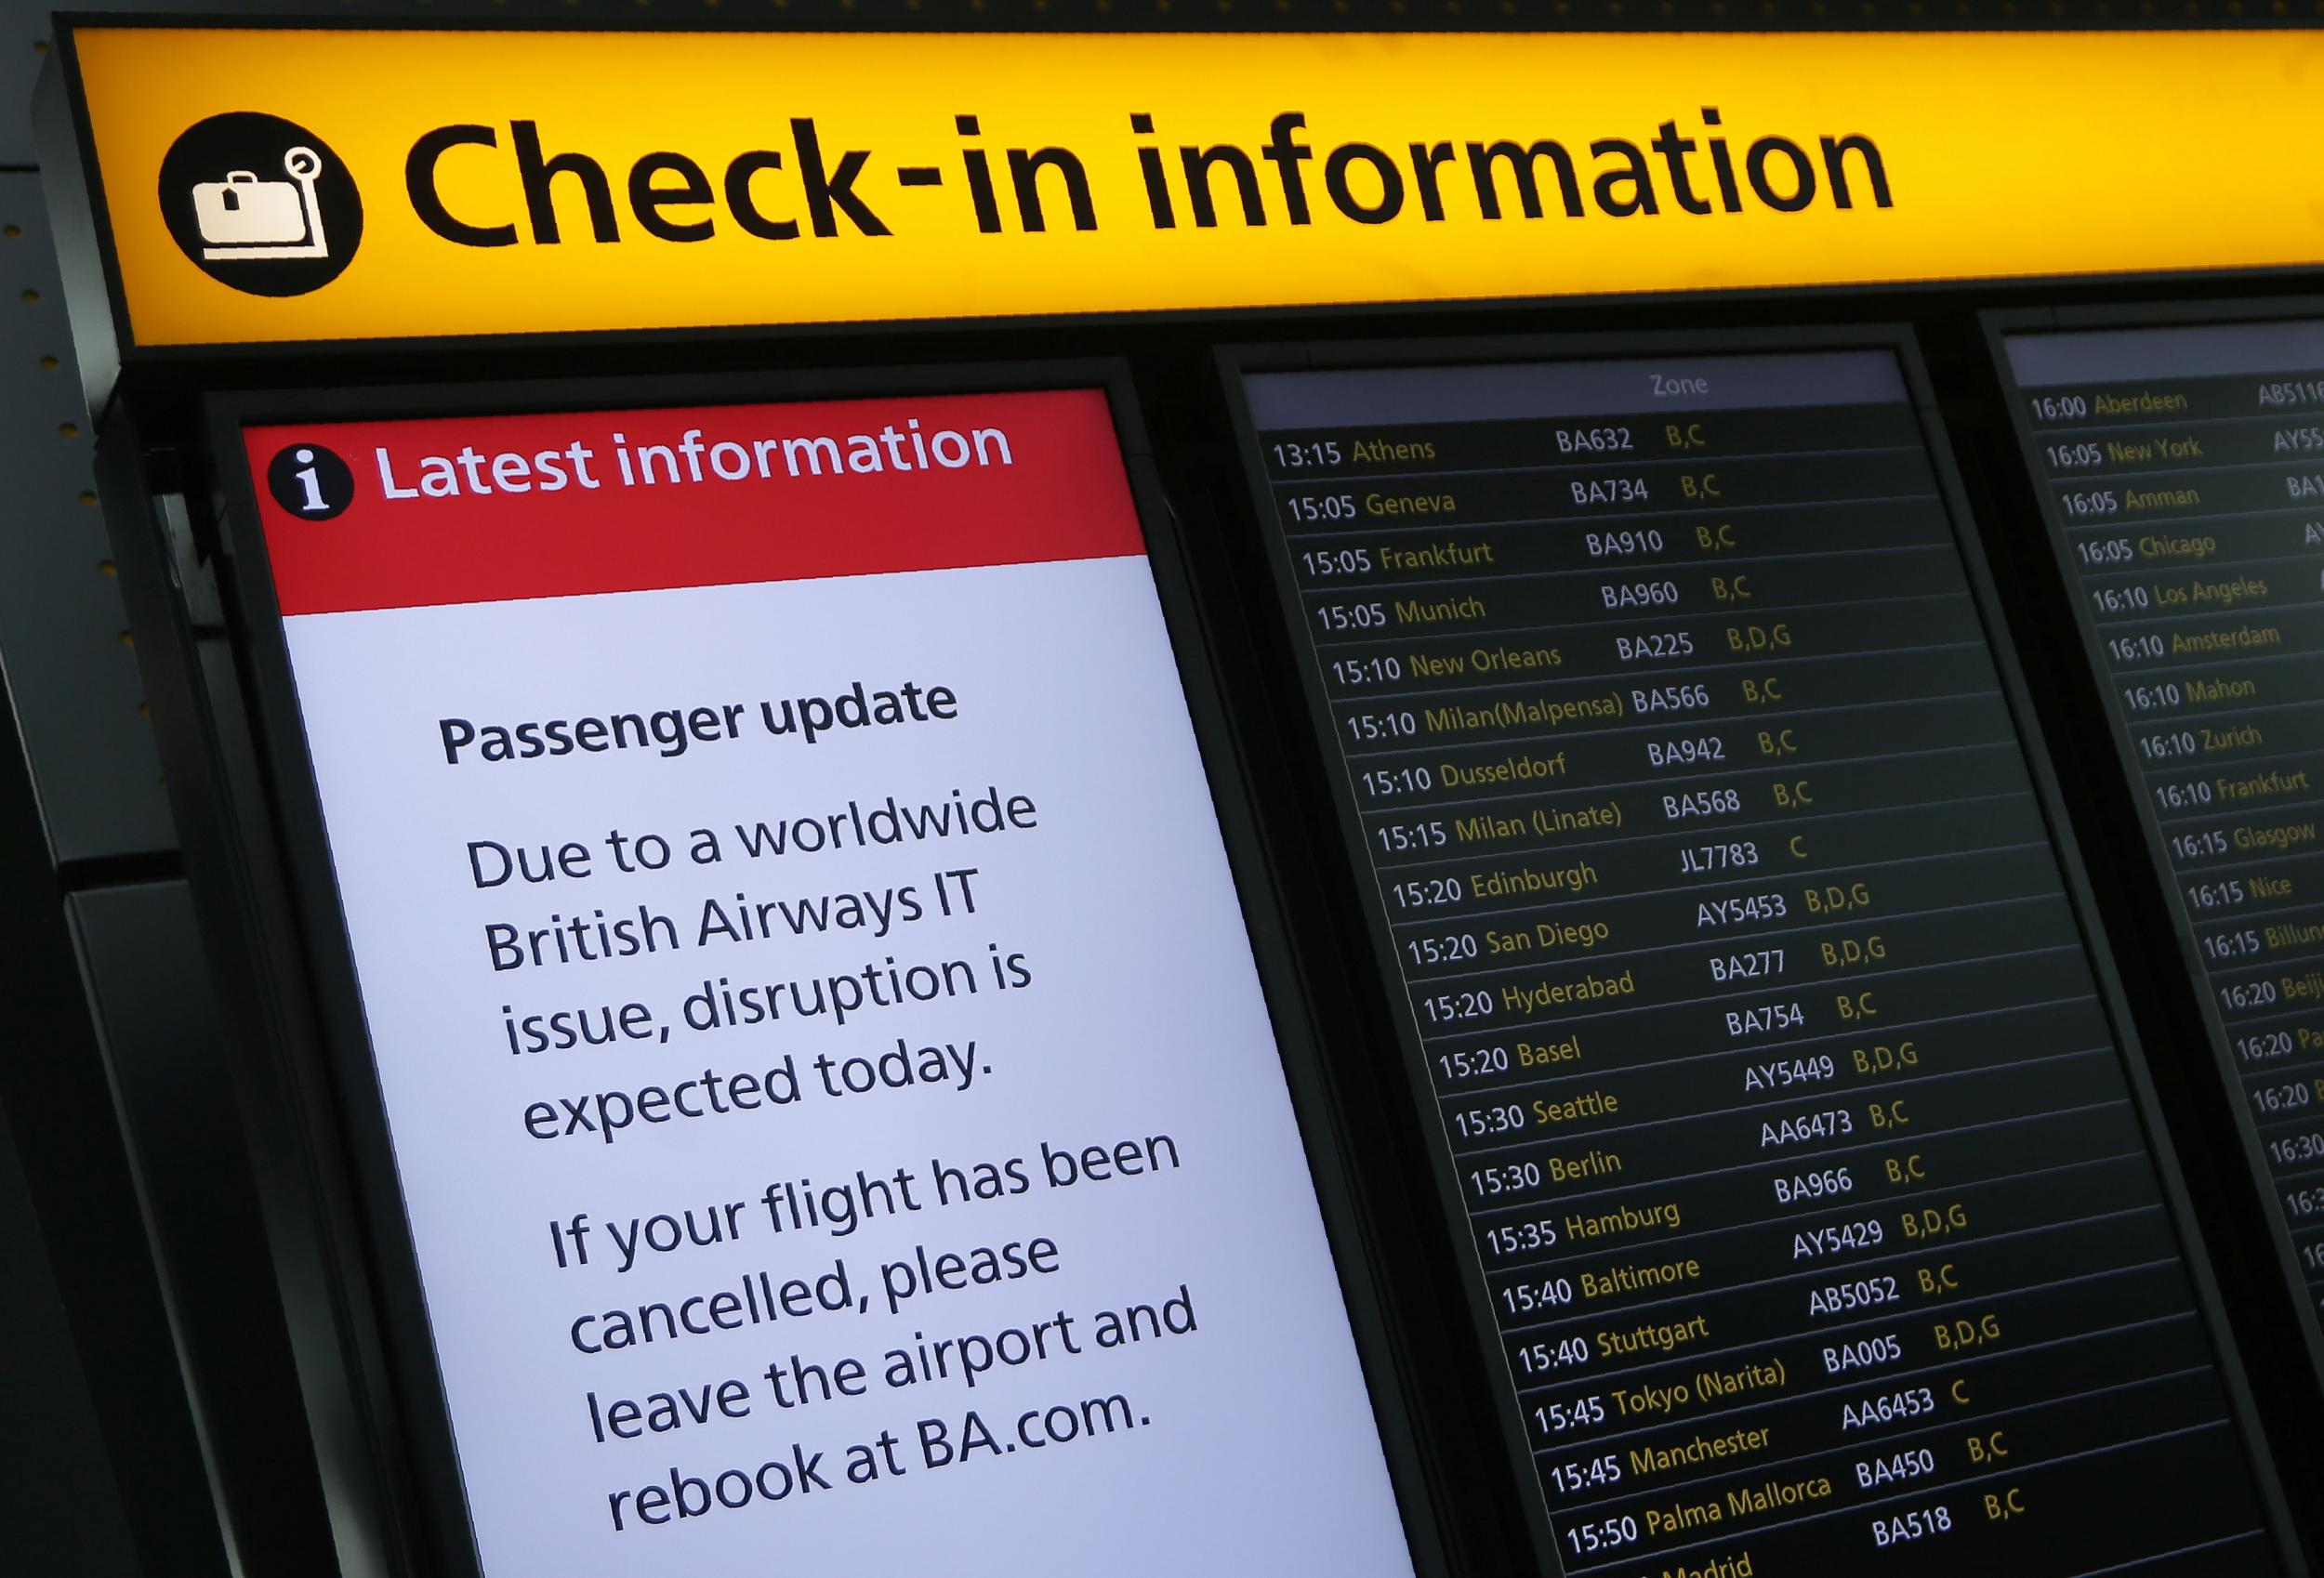 British Airways cancelled more than 90 flights on Tuesday because of computers failure